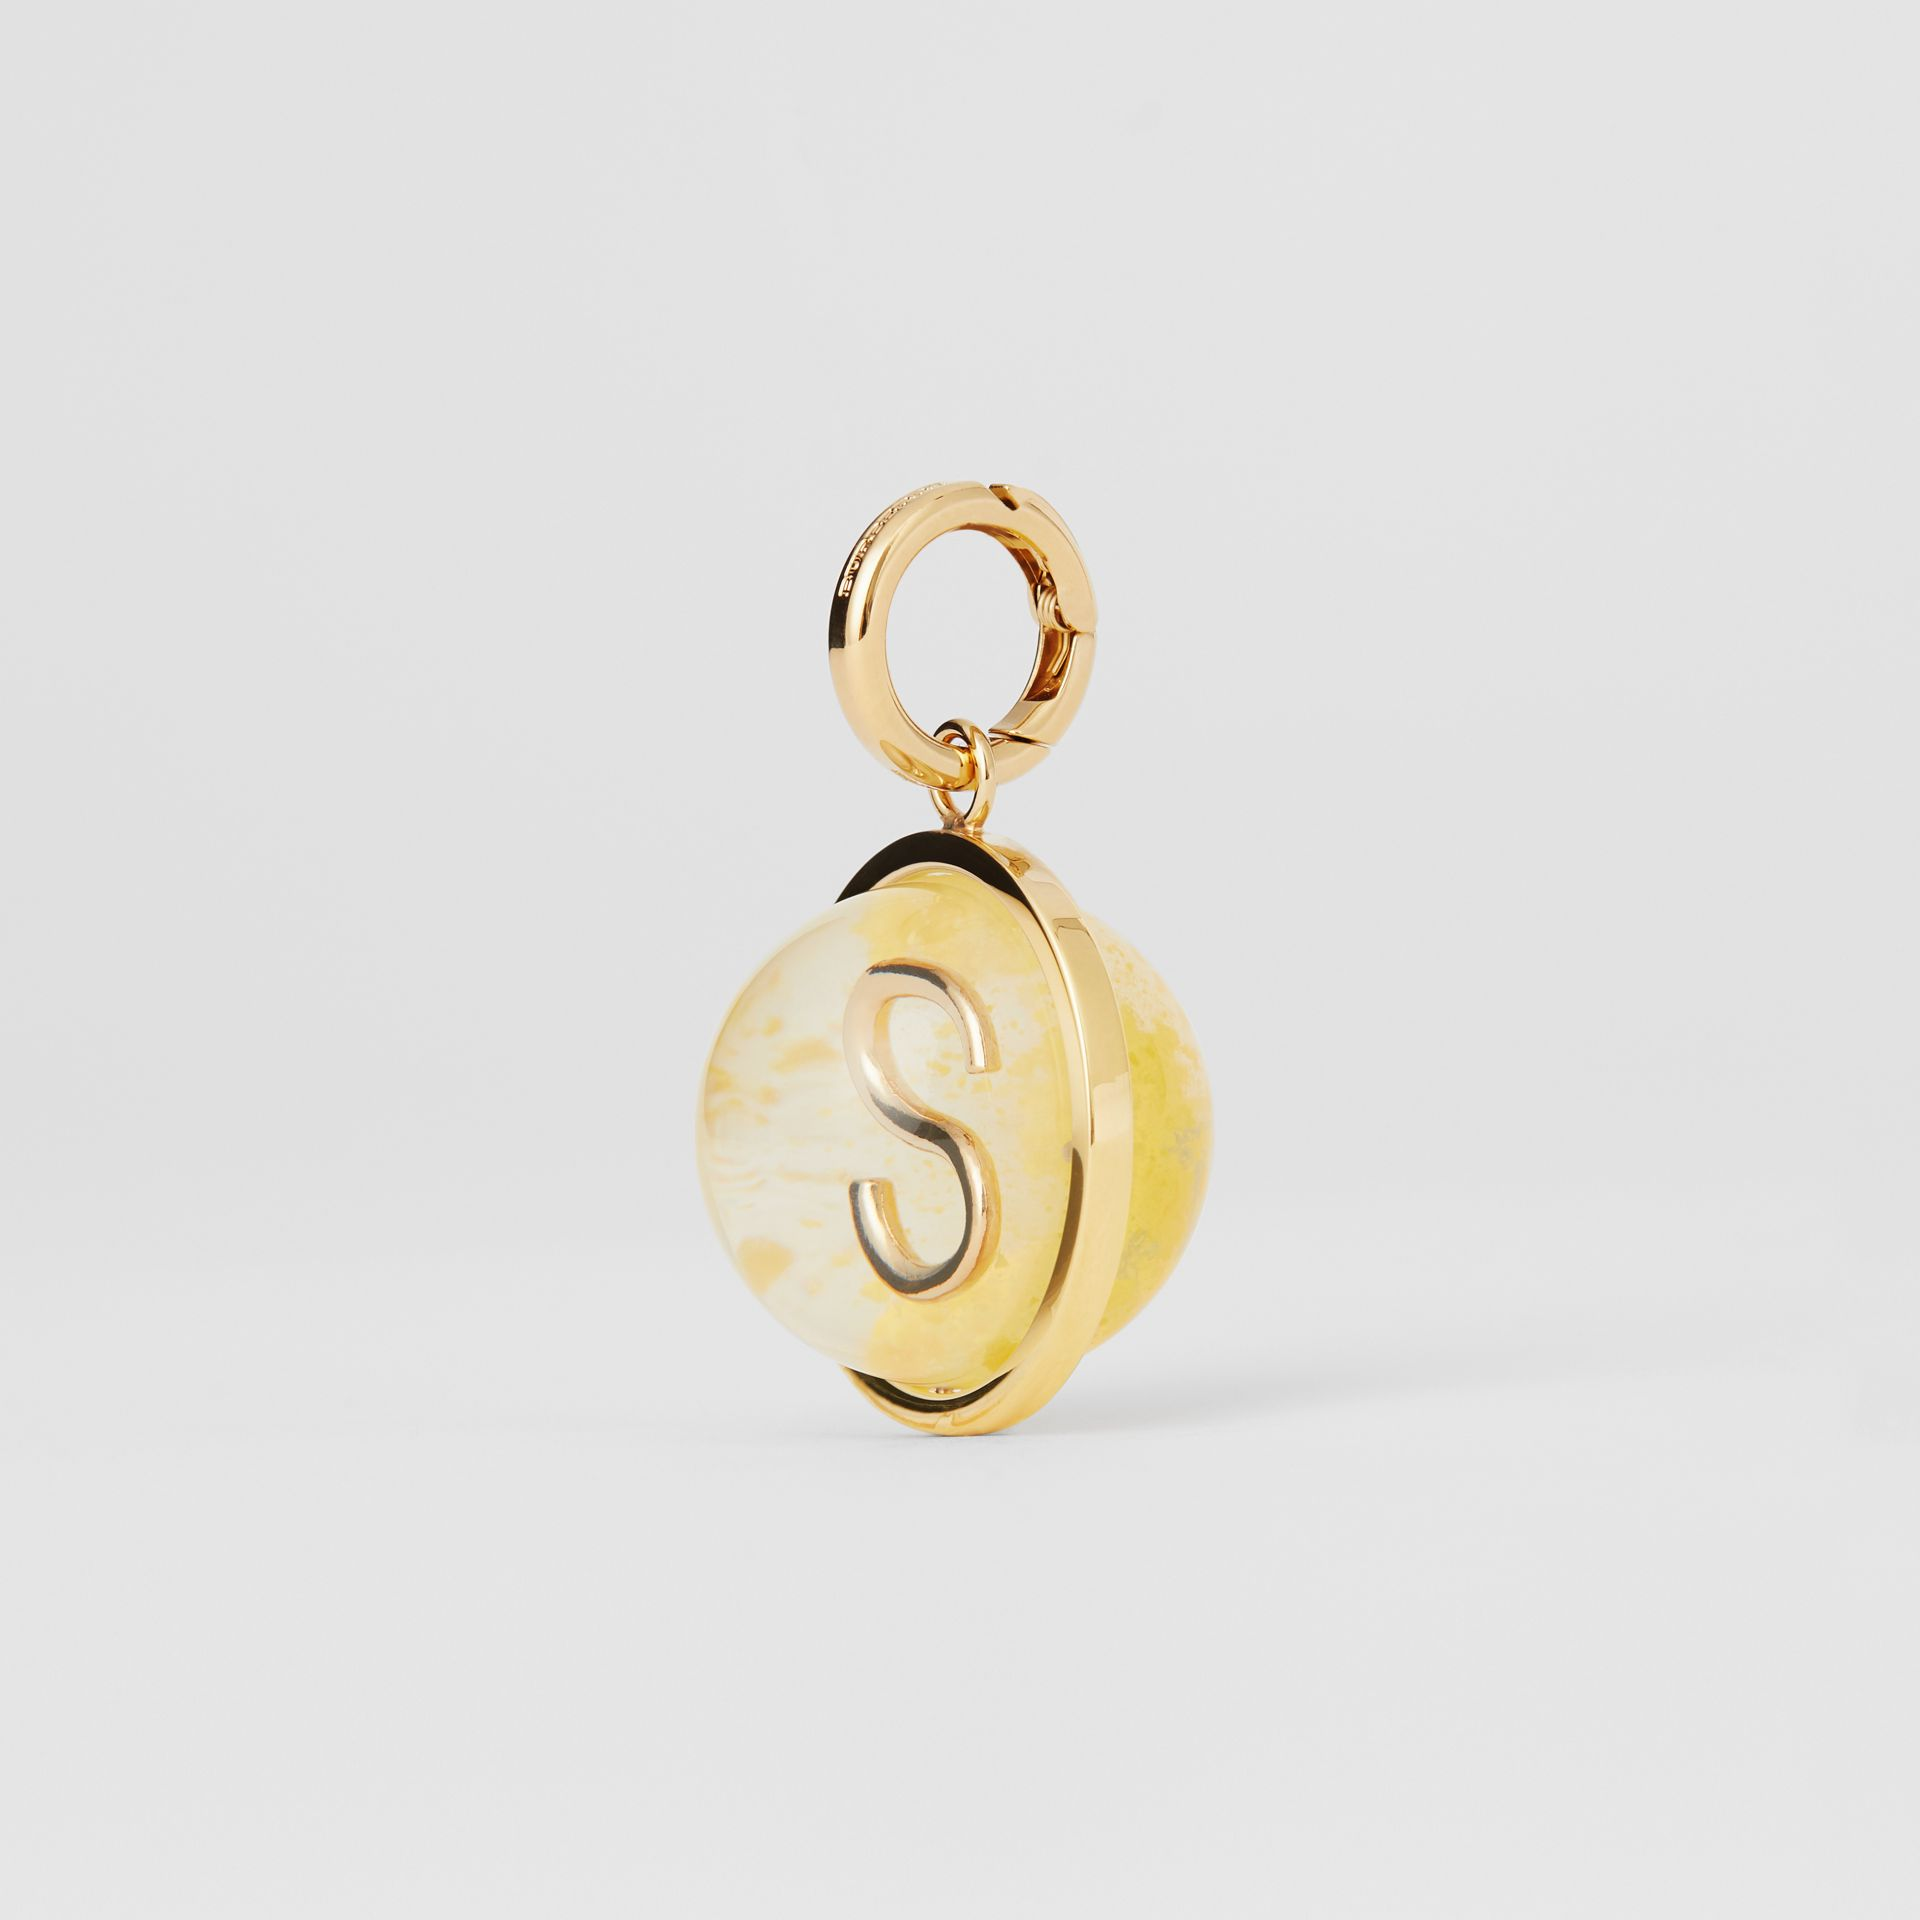 Marbled Resin 'S' Alphabet Charm in Gold/mimosa - Women | Burberry - gallery image 5